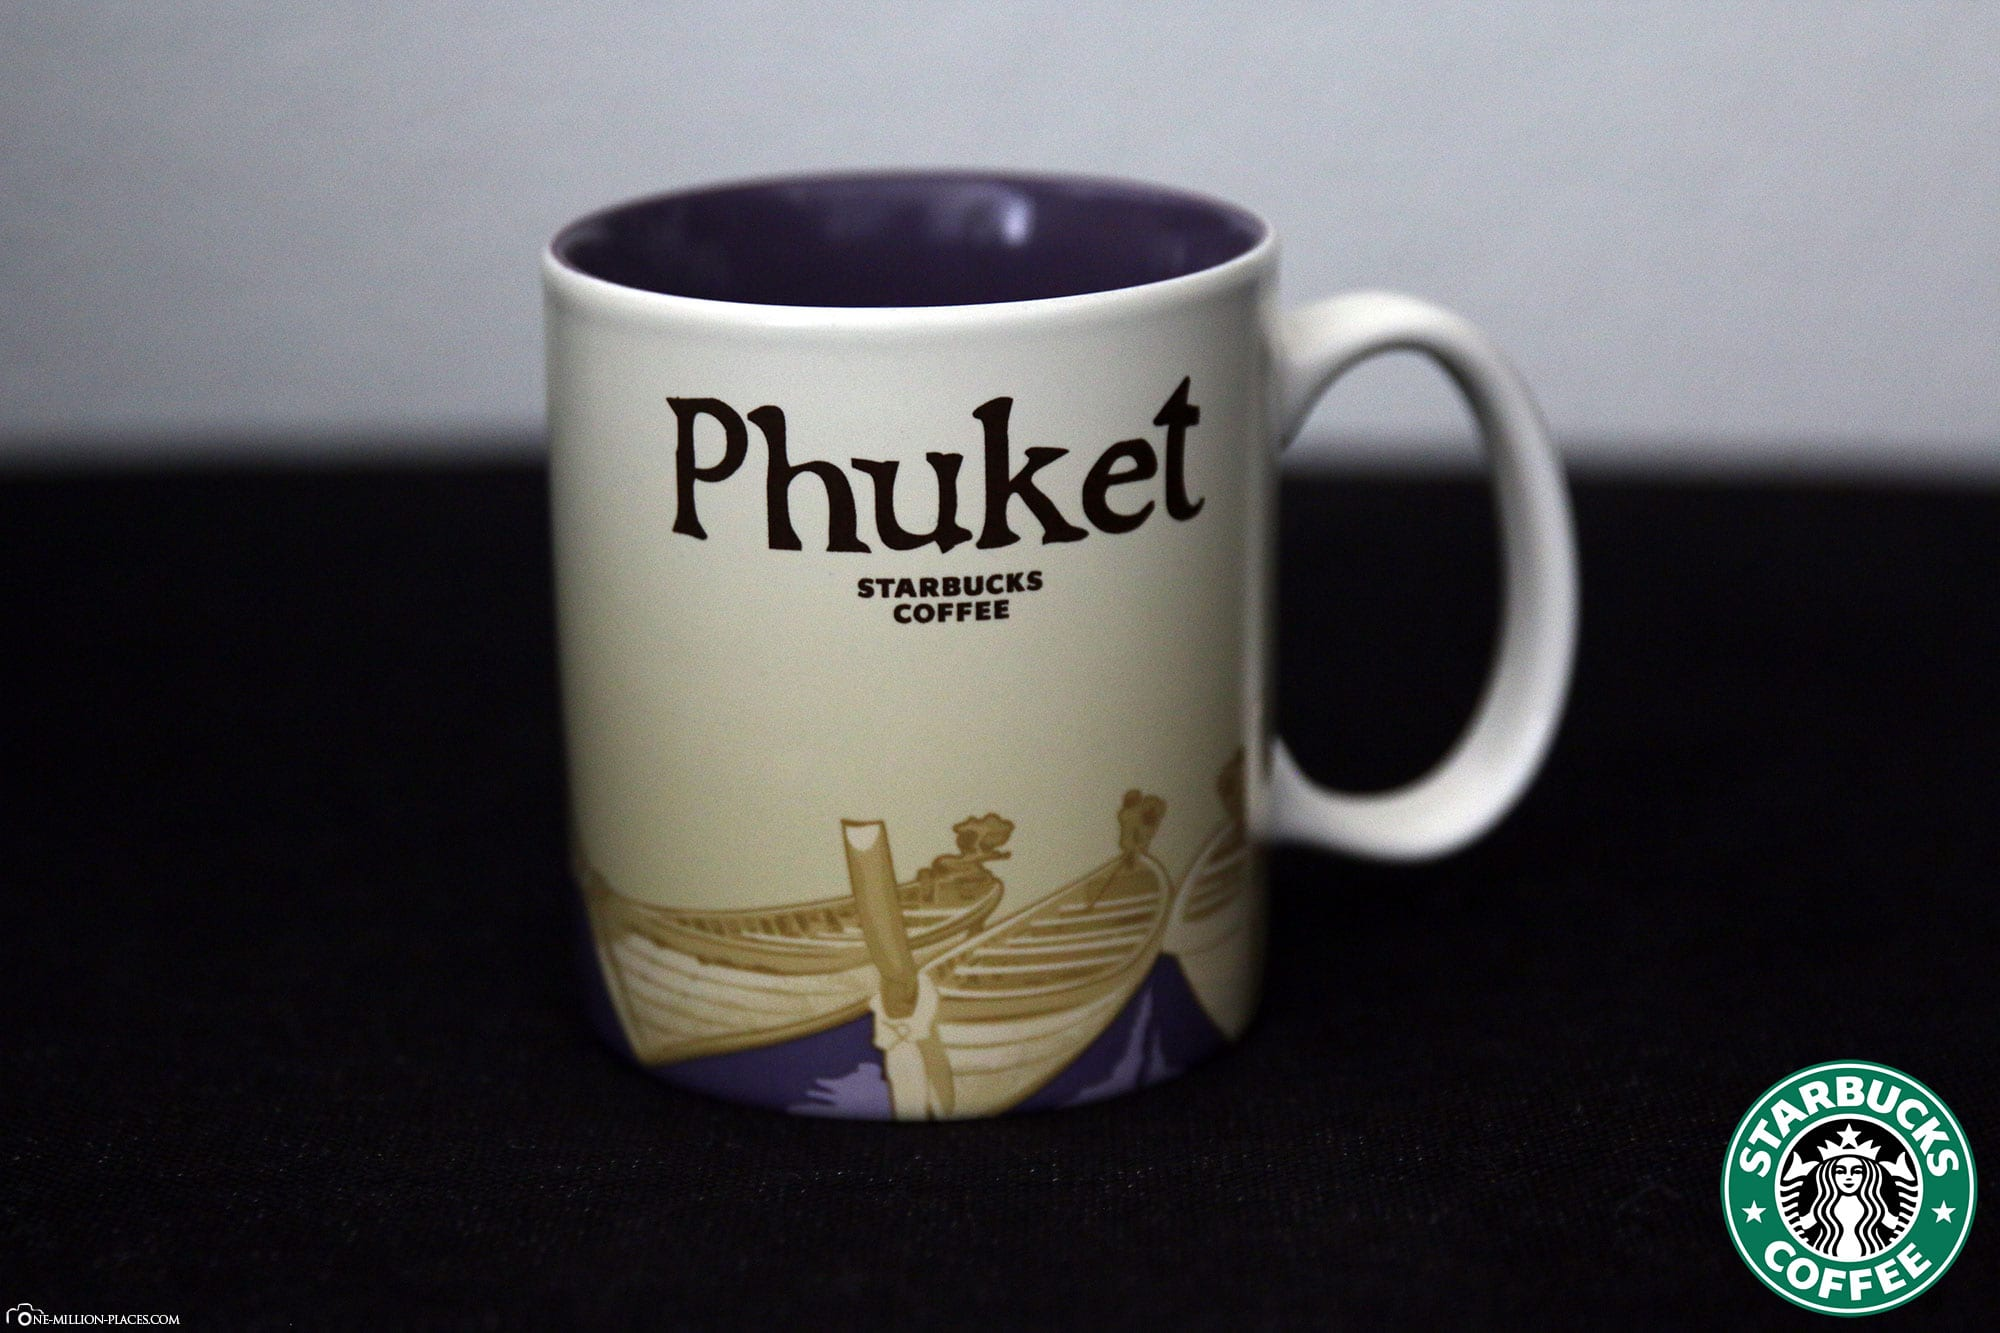 Phuket, Starbucks Tasse, Global Icon Serie, City Mugs, Sammlung, Thailand, Reisebericht